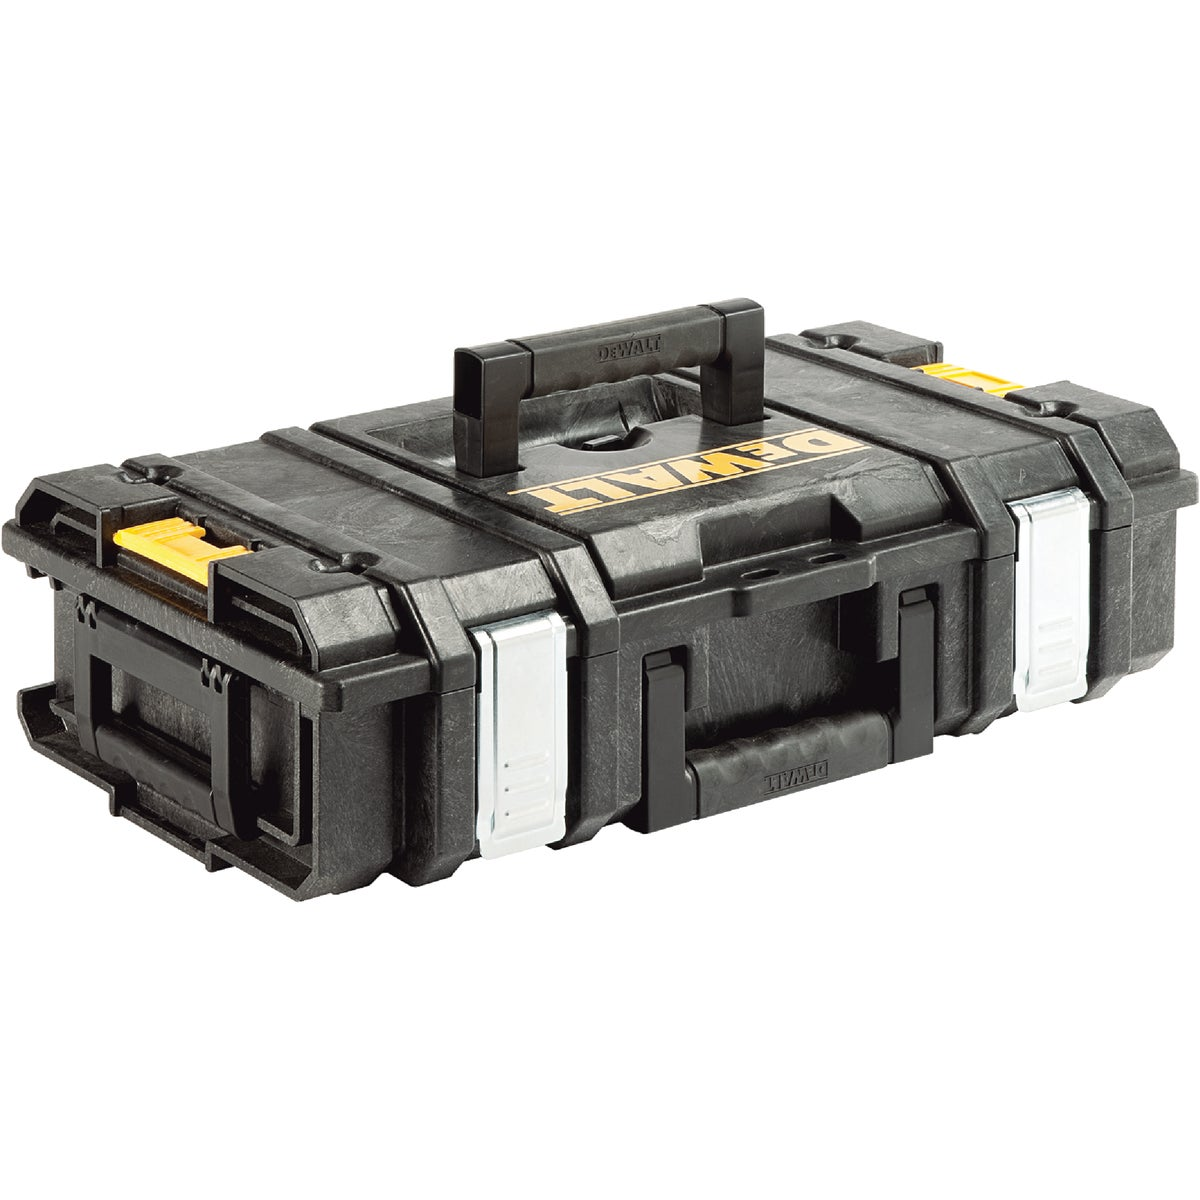 DS150 ORGANIZER BOX - DWST08201 by Stanley Tools